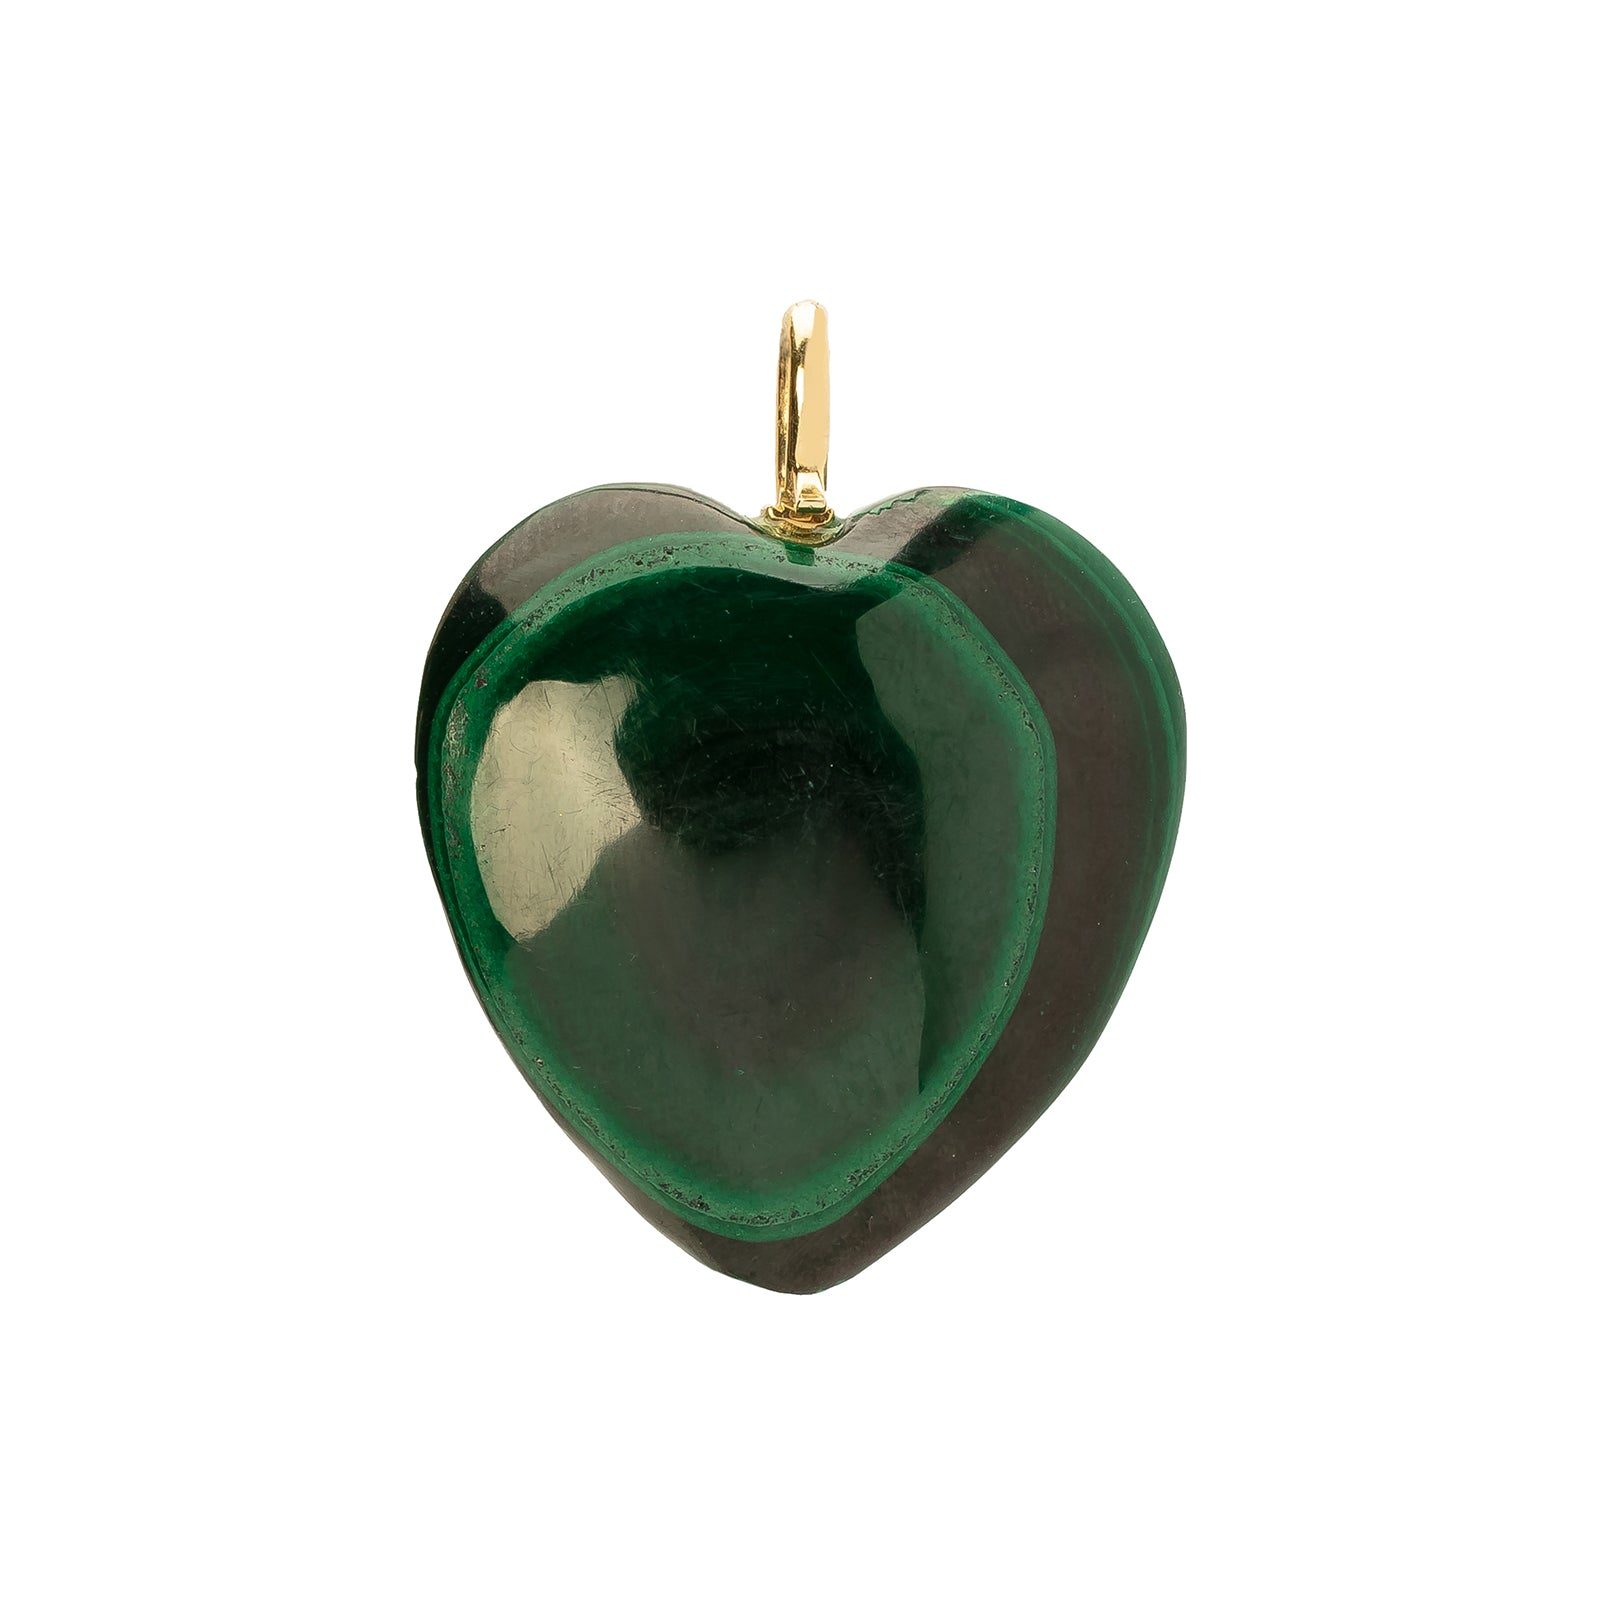 Jenna Blake Malachite Heart Pendant - Large - Charms & Pendants - Broken English Jewelry